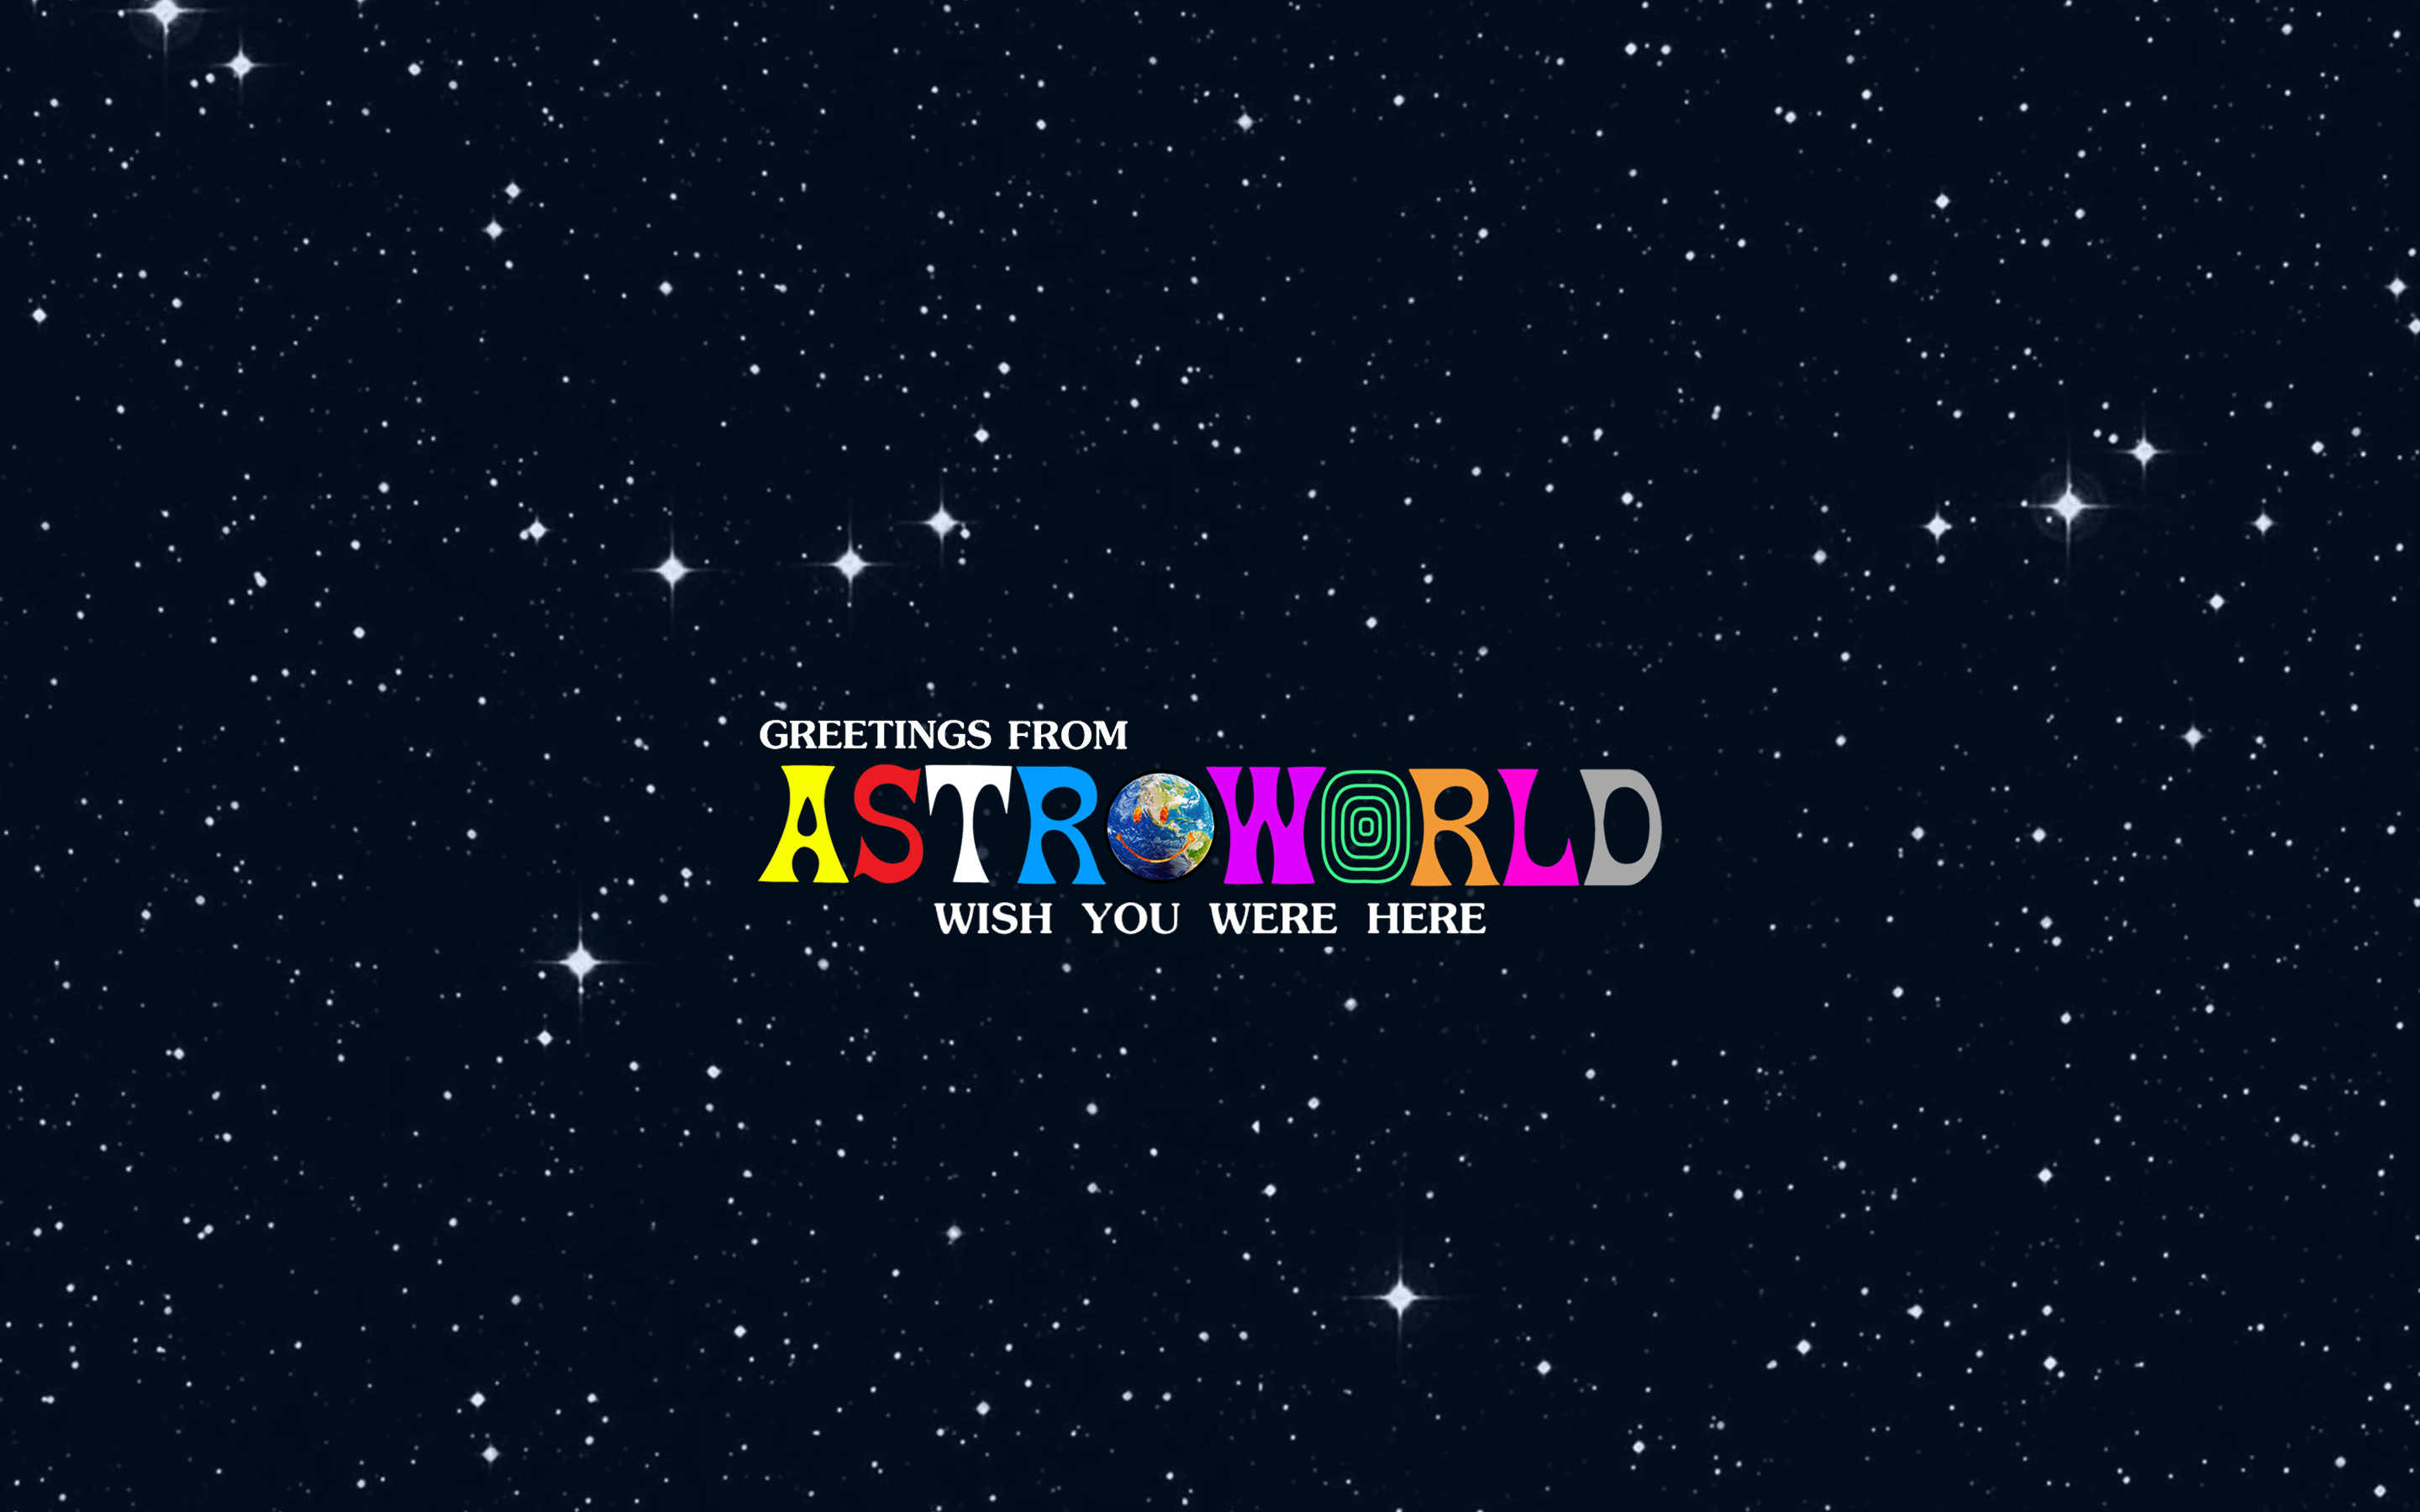 Astroworld Wallpaper: The Best wallpaper Available